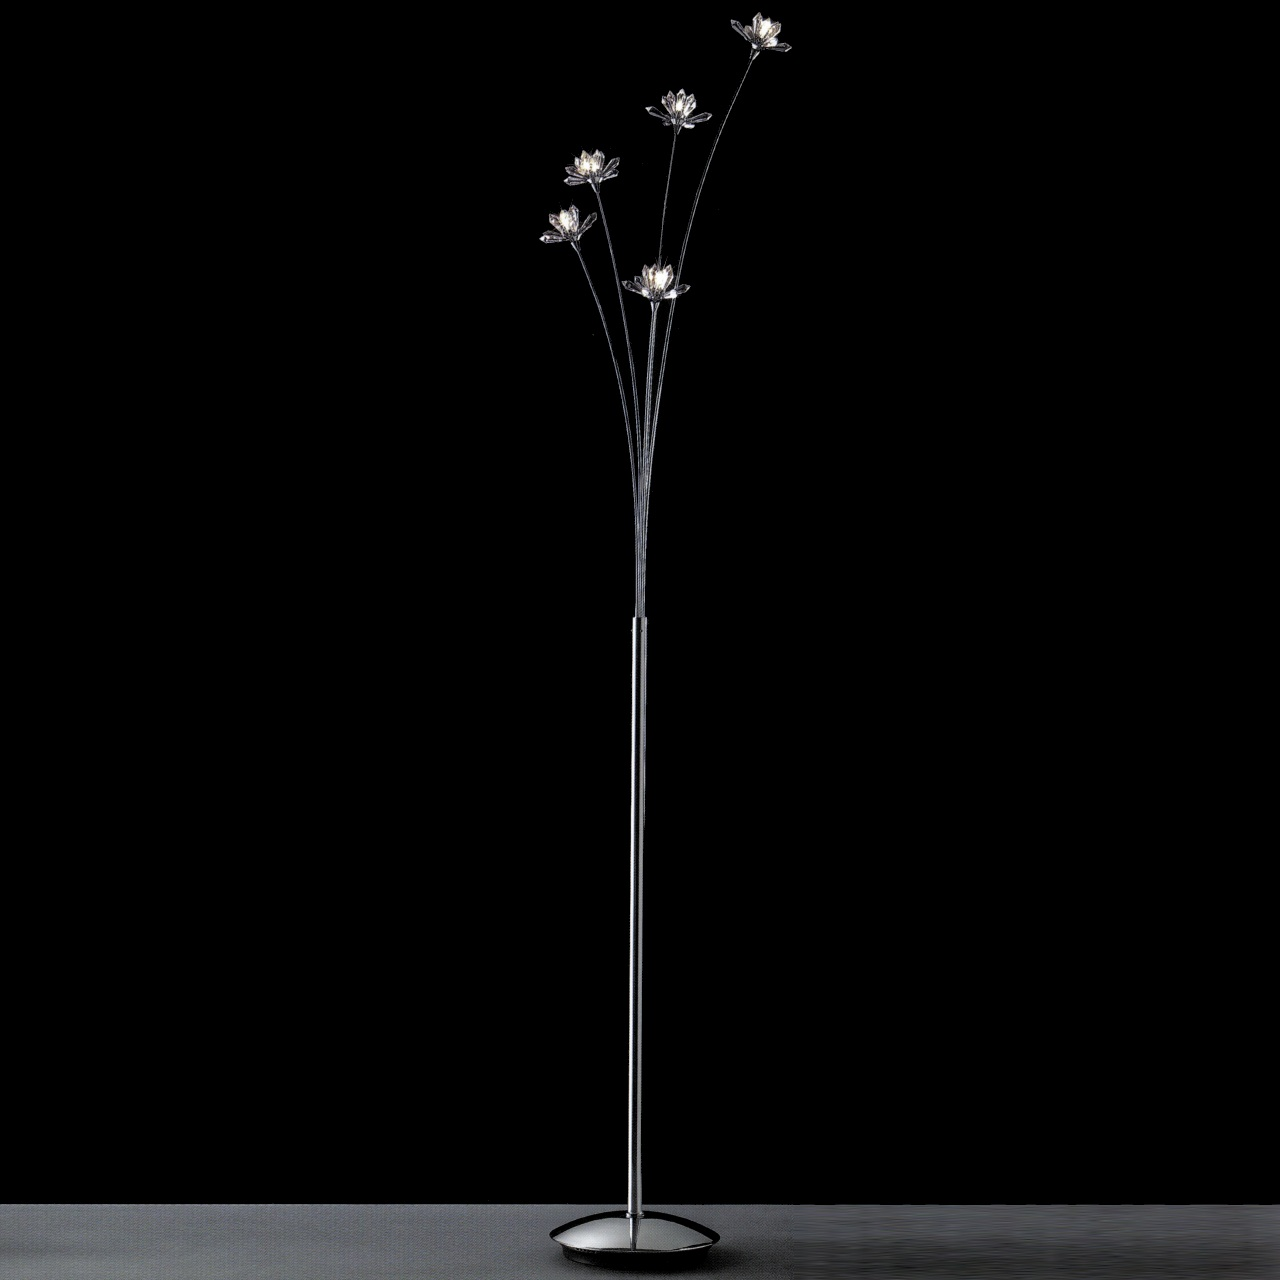 Brizzo lighting stores 65 petali modern crystal floor lamp picture of 65 petali modern crystal floor lamp polished chrome 5 lights aloadofball Choice Image